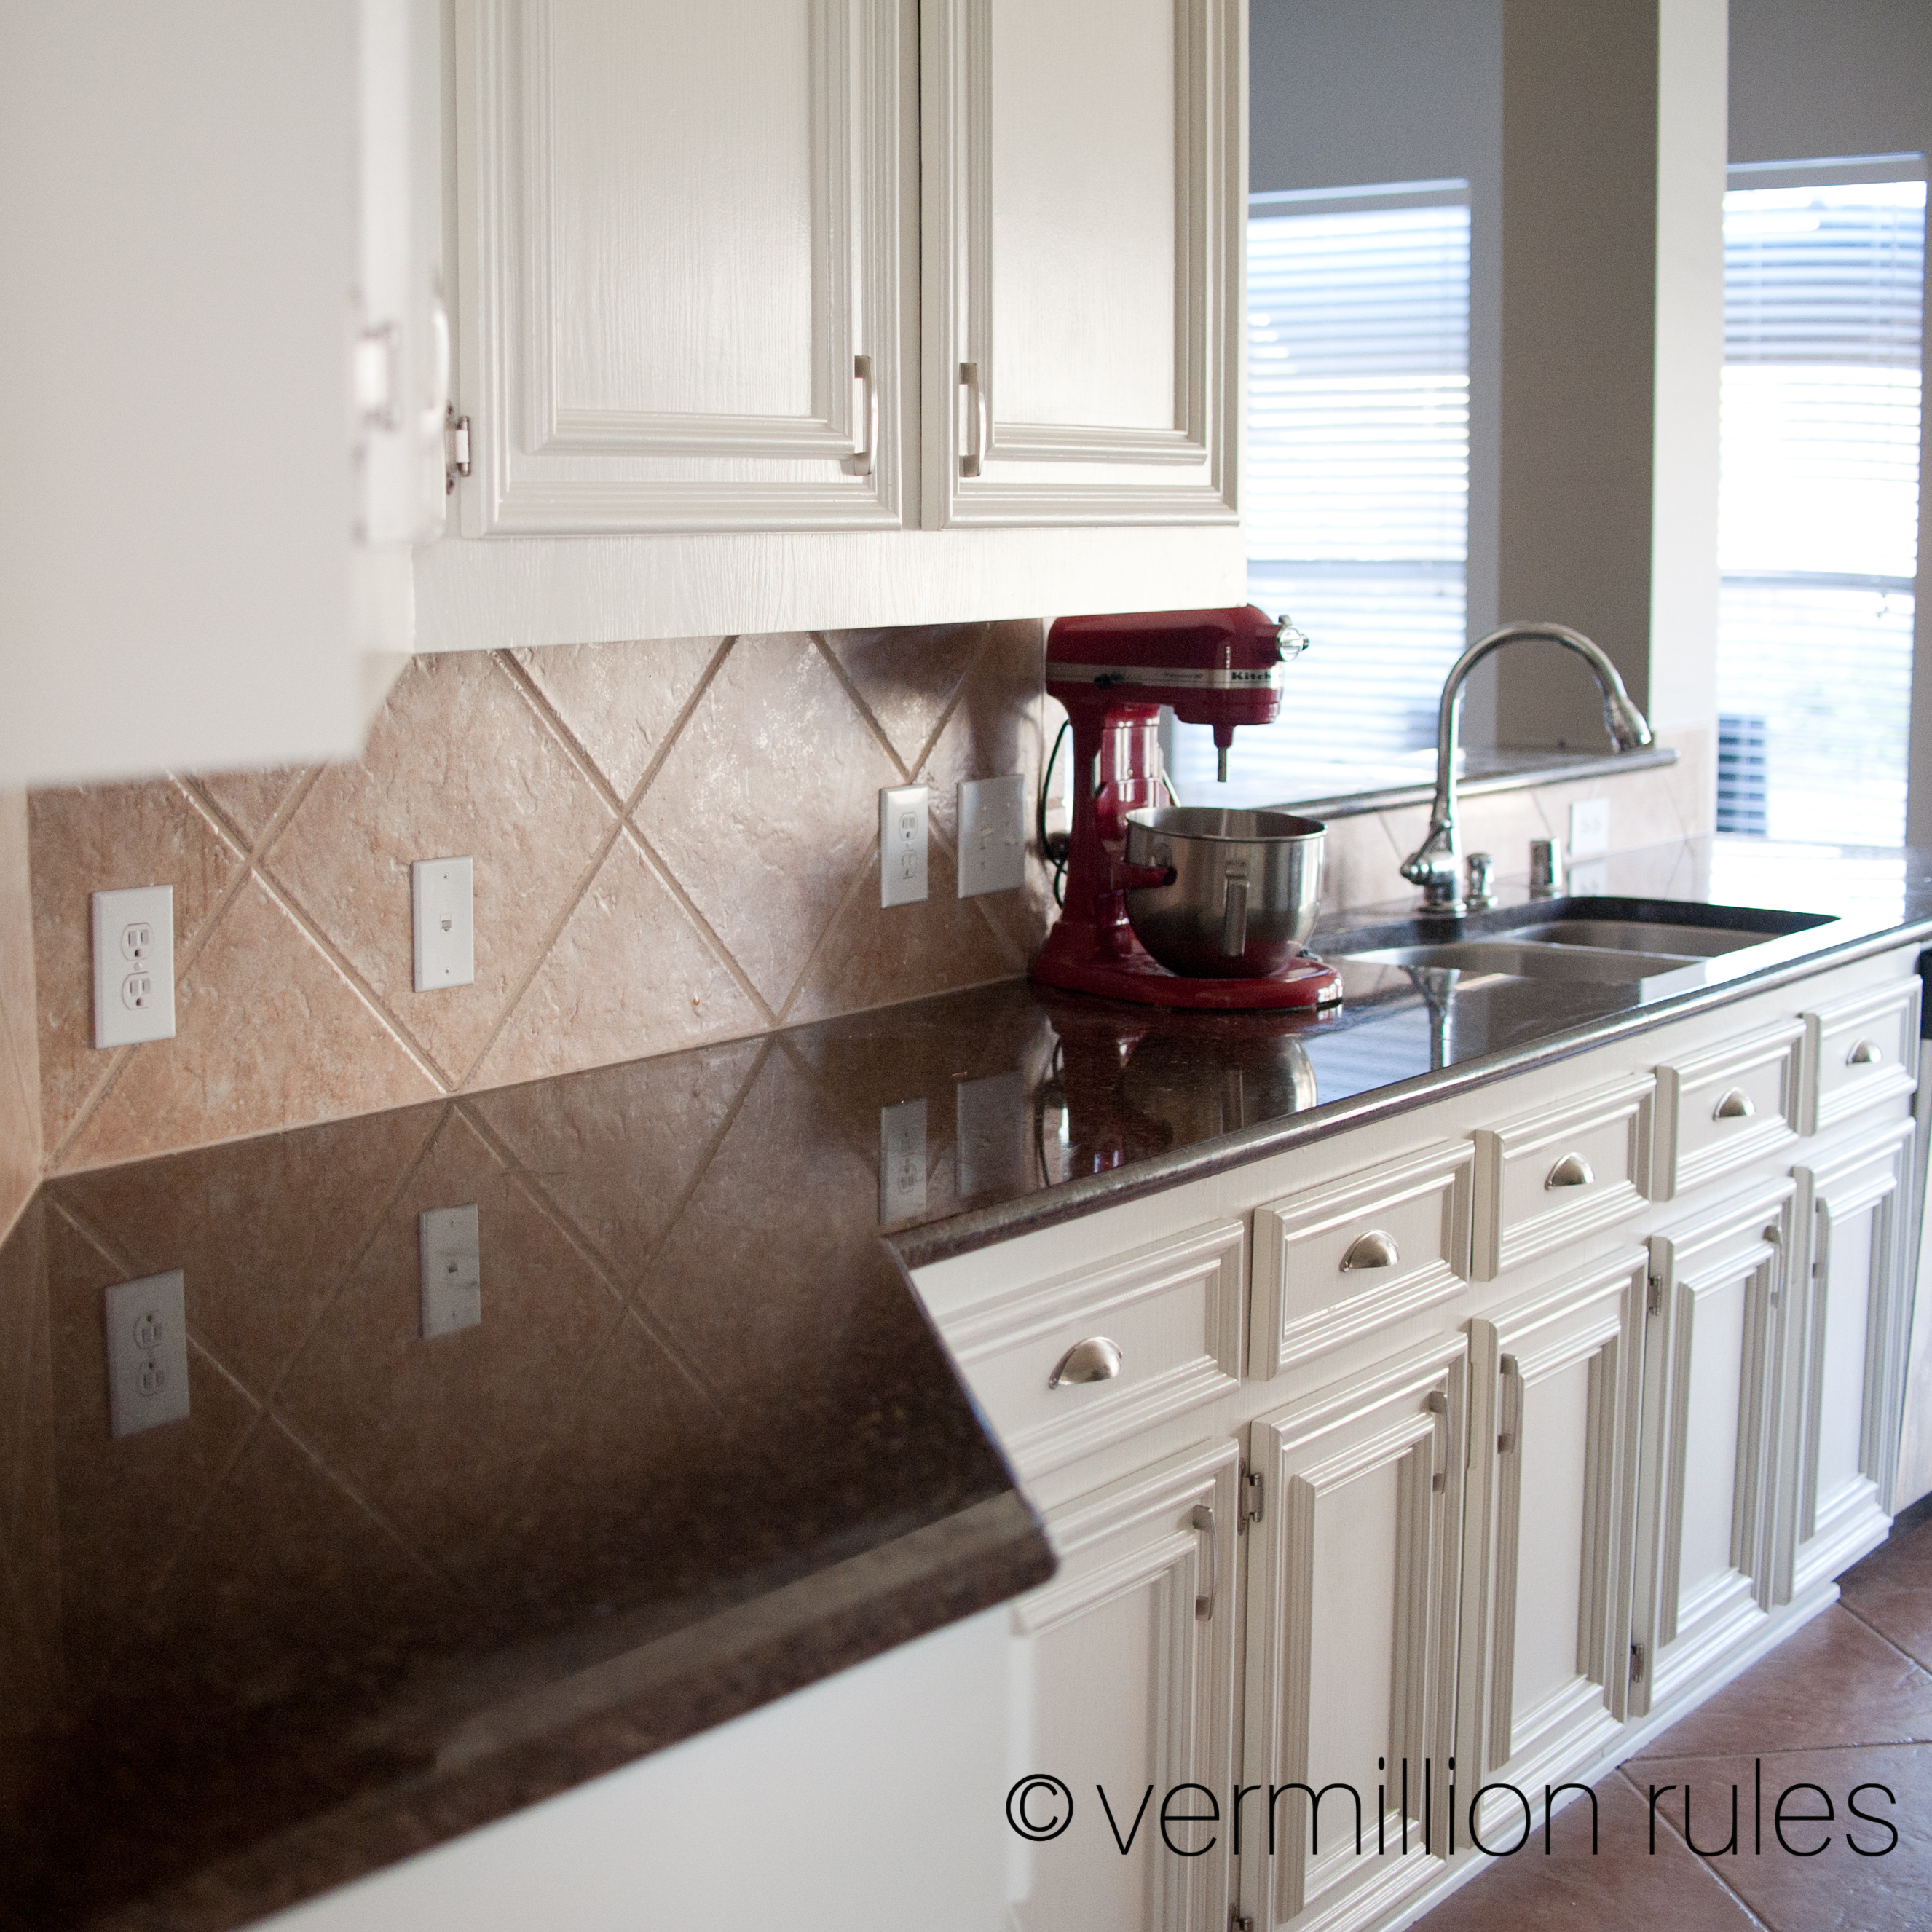 Dyi Kitchen Cabinets: A DIY Project: Painting Your Kitchen Cabinets